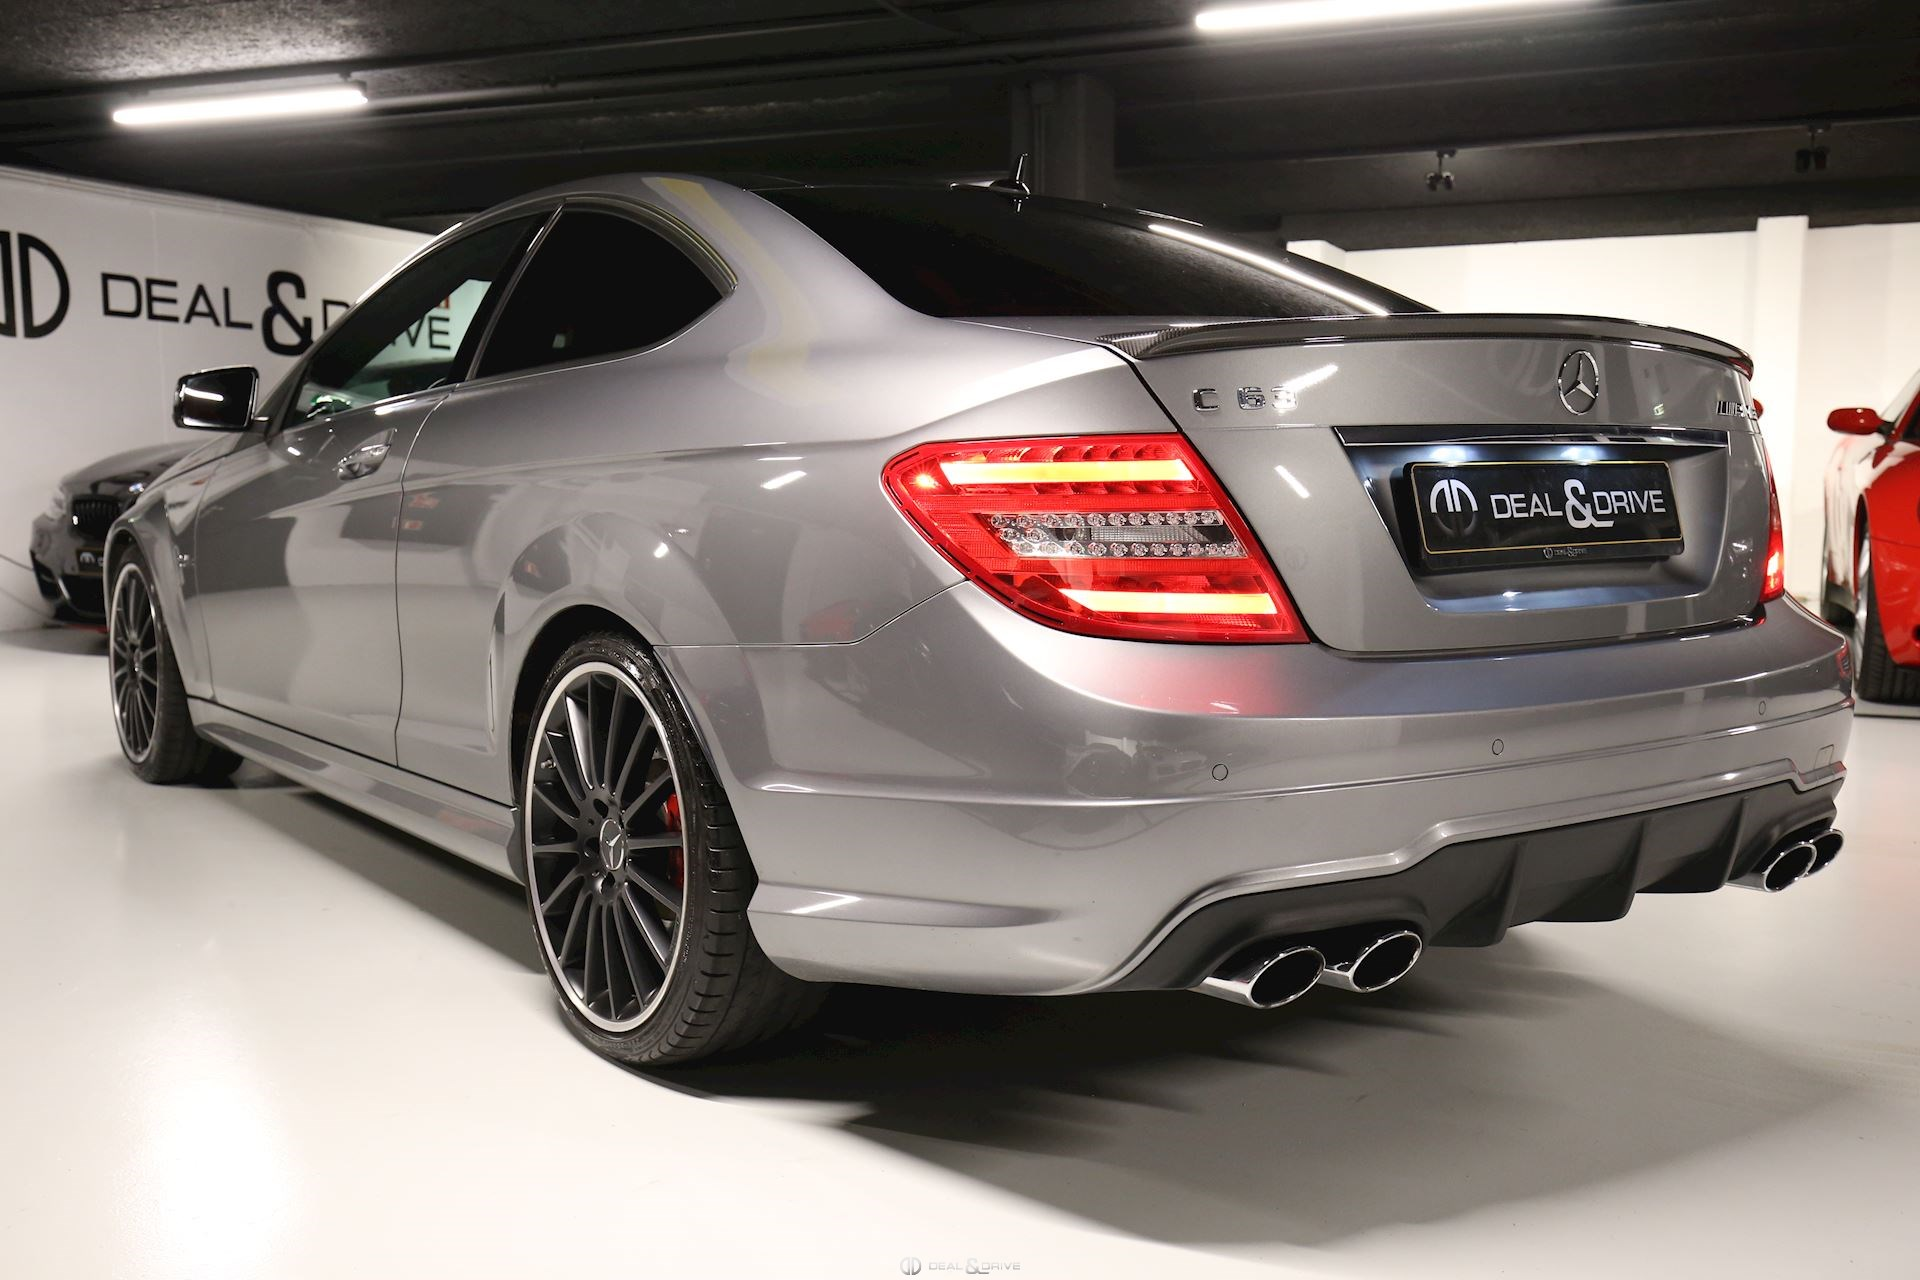 MERCEDES C63 AMG COUPE PERFORMANCE Deal & Drive